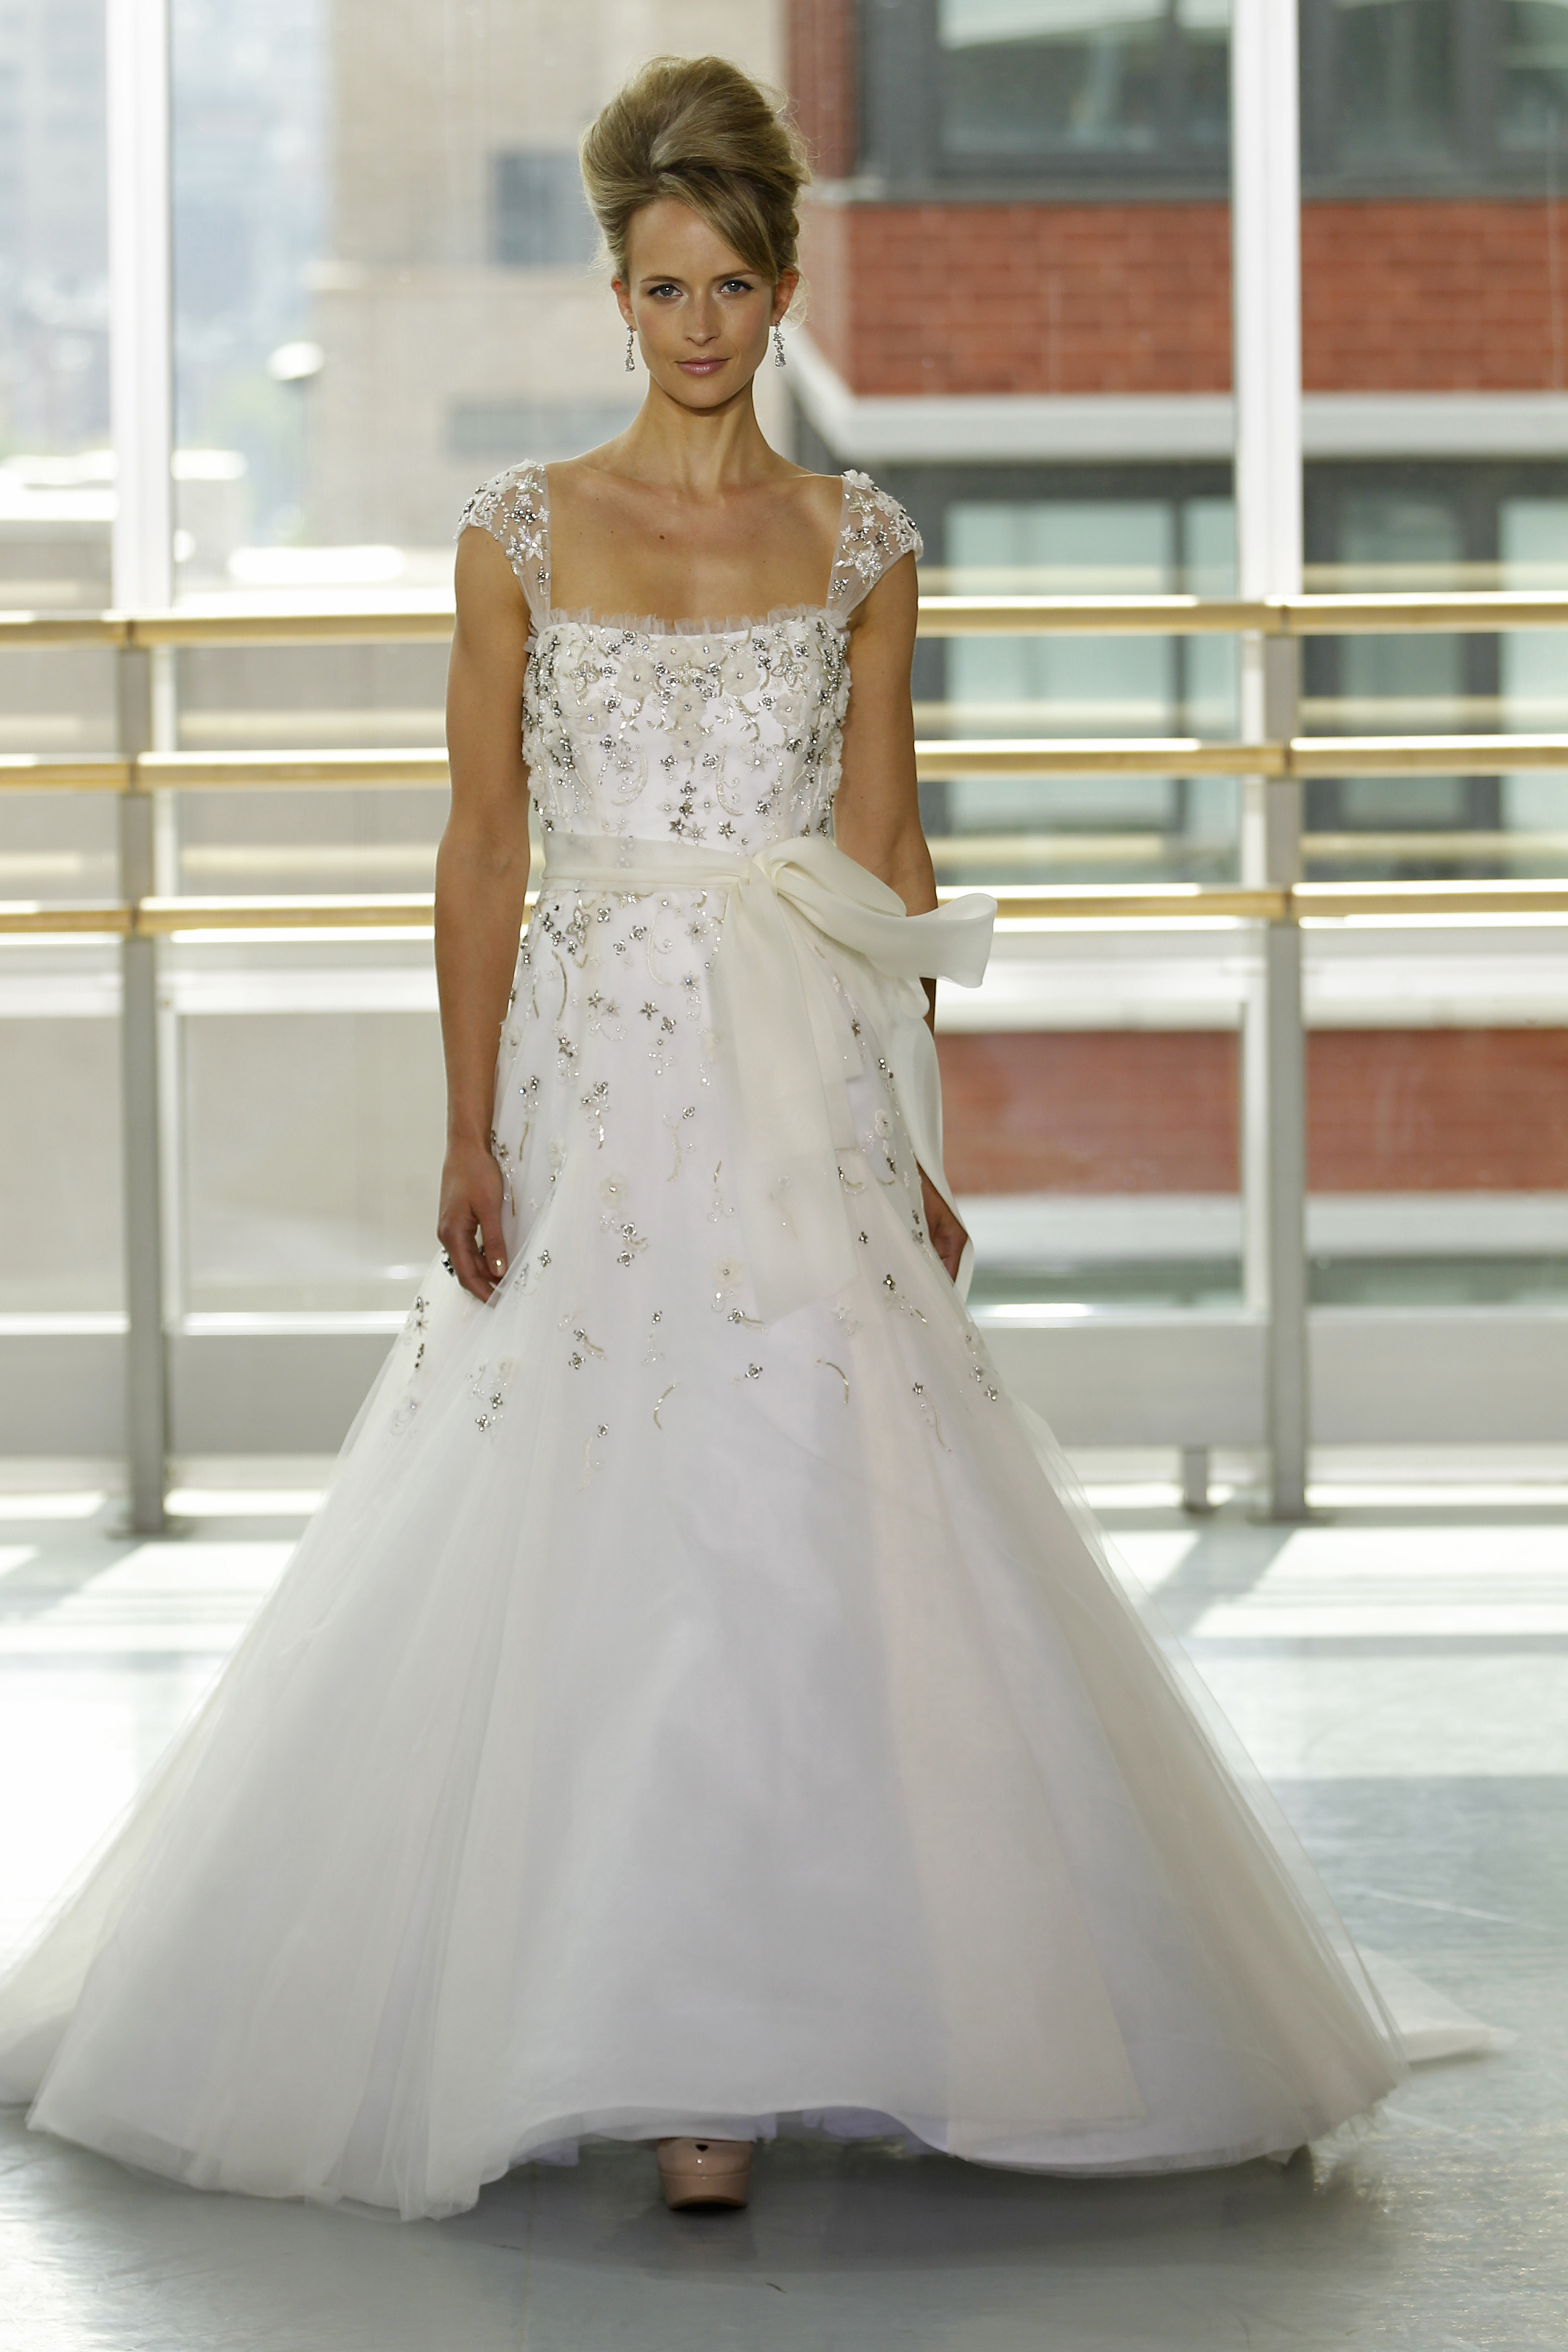 Spring-2013-wedding-dress-rivini-bridal-gowns-michelle.original